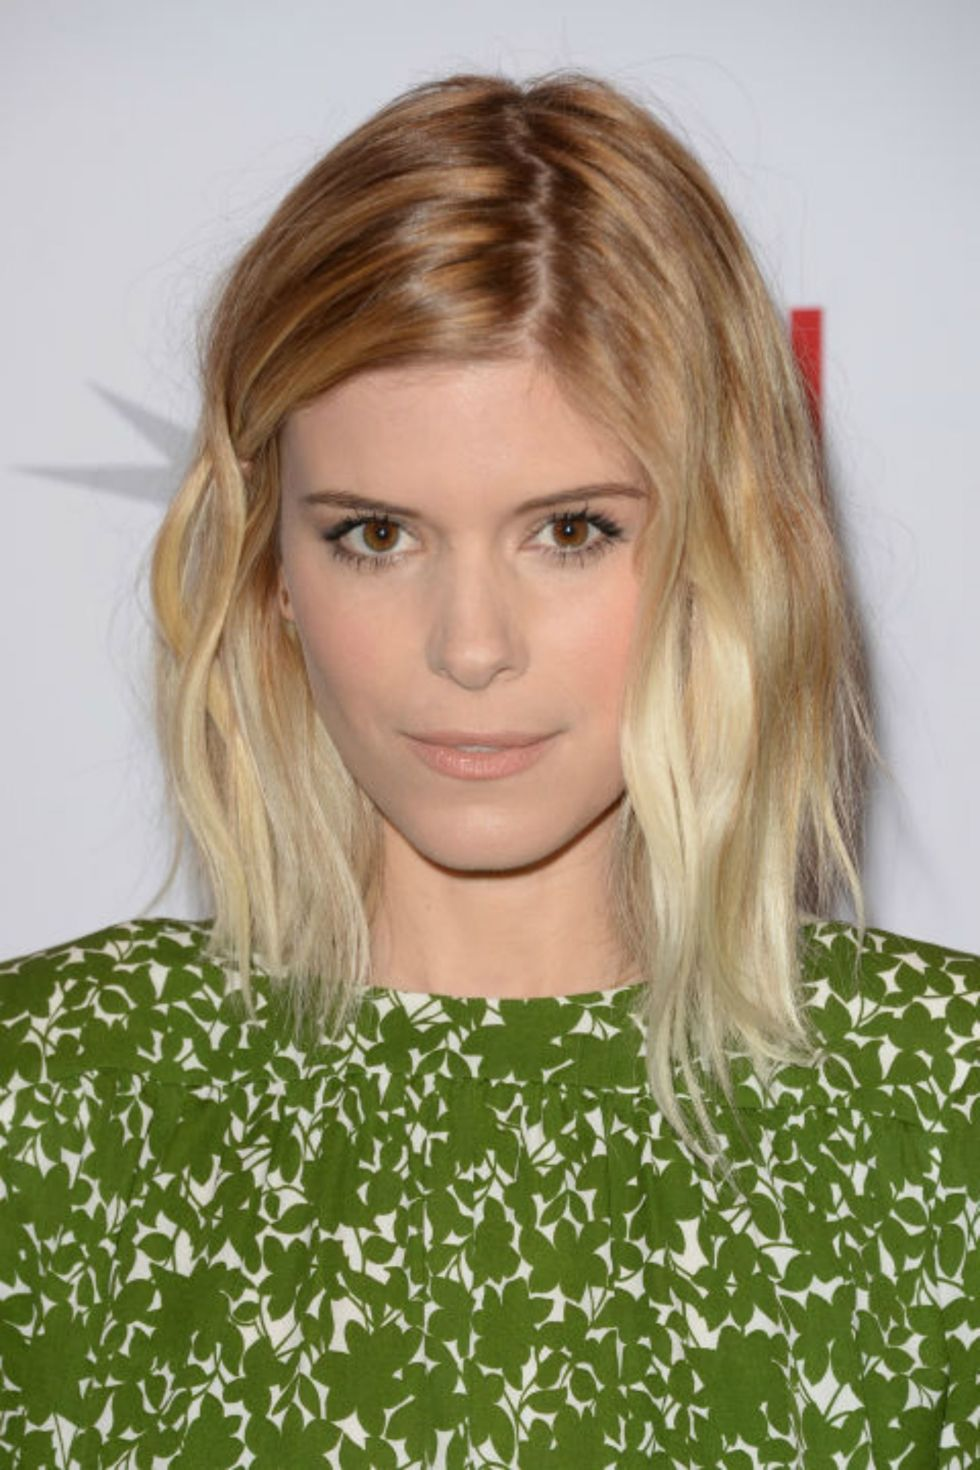 Excellent 46 Great Medium Hairstyles Haircuts For Mid Length Hair Short Hairstyles Gunalazisus